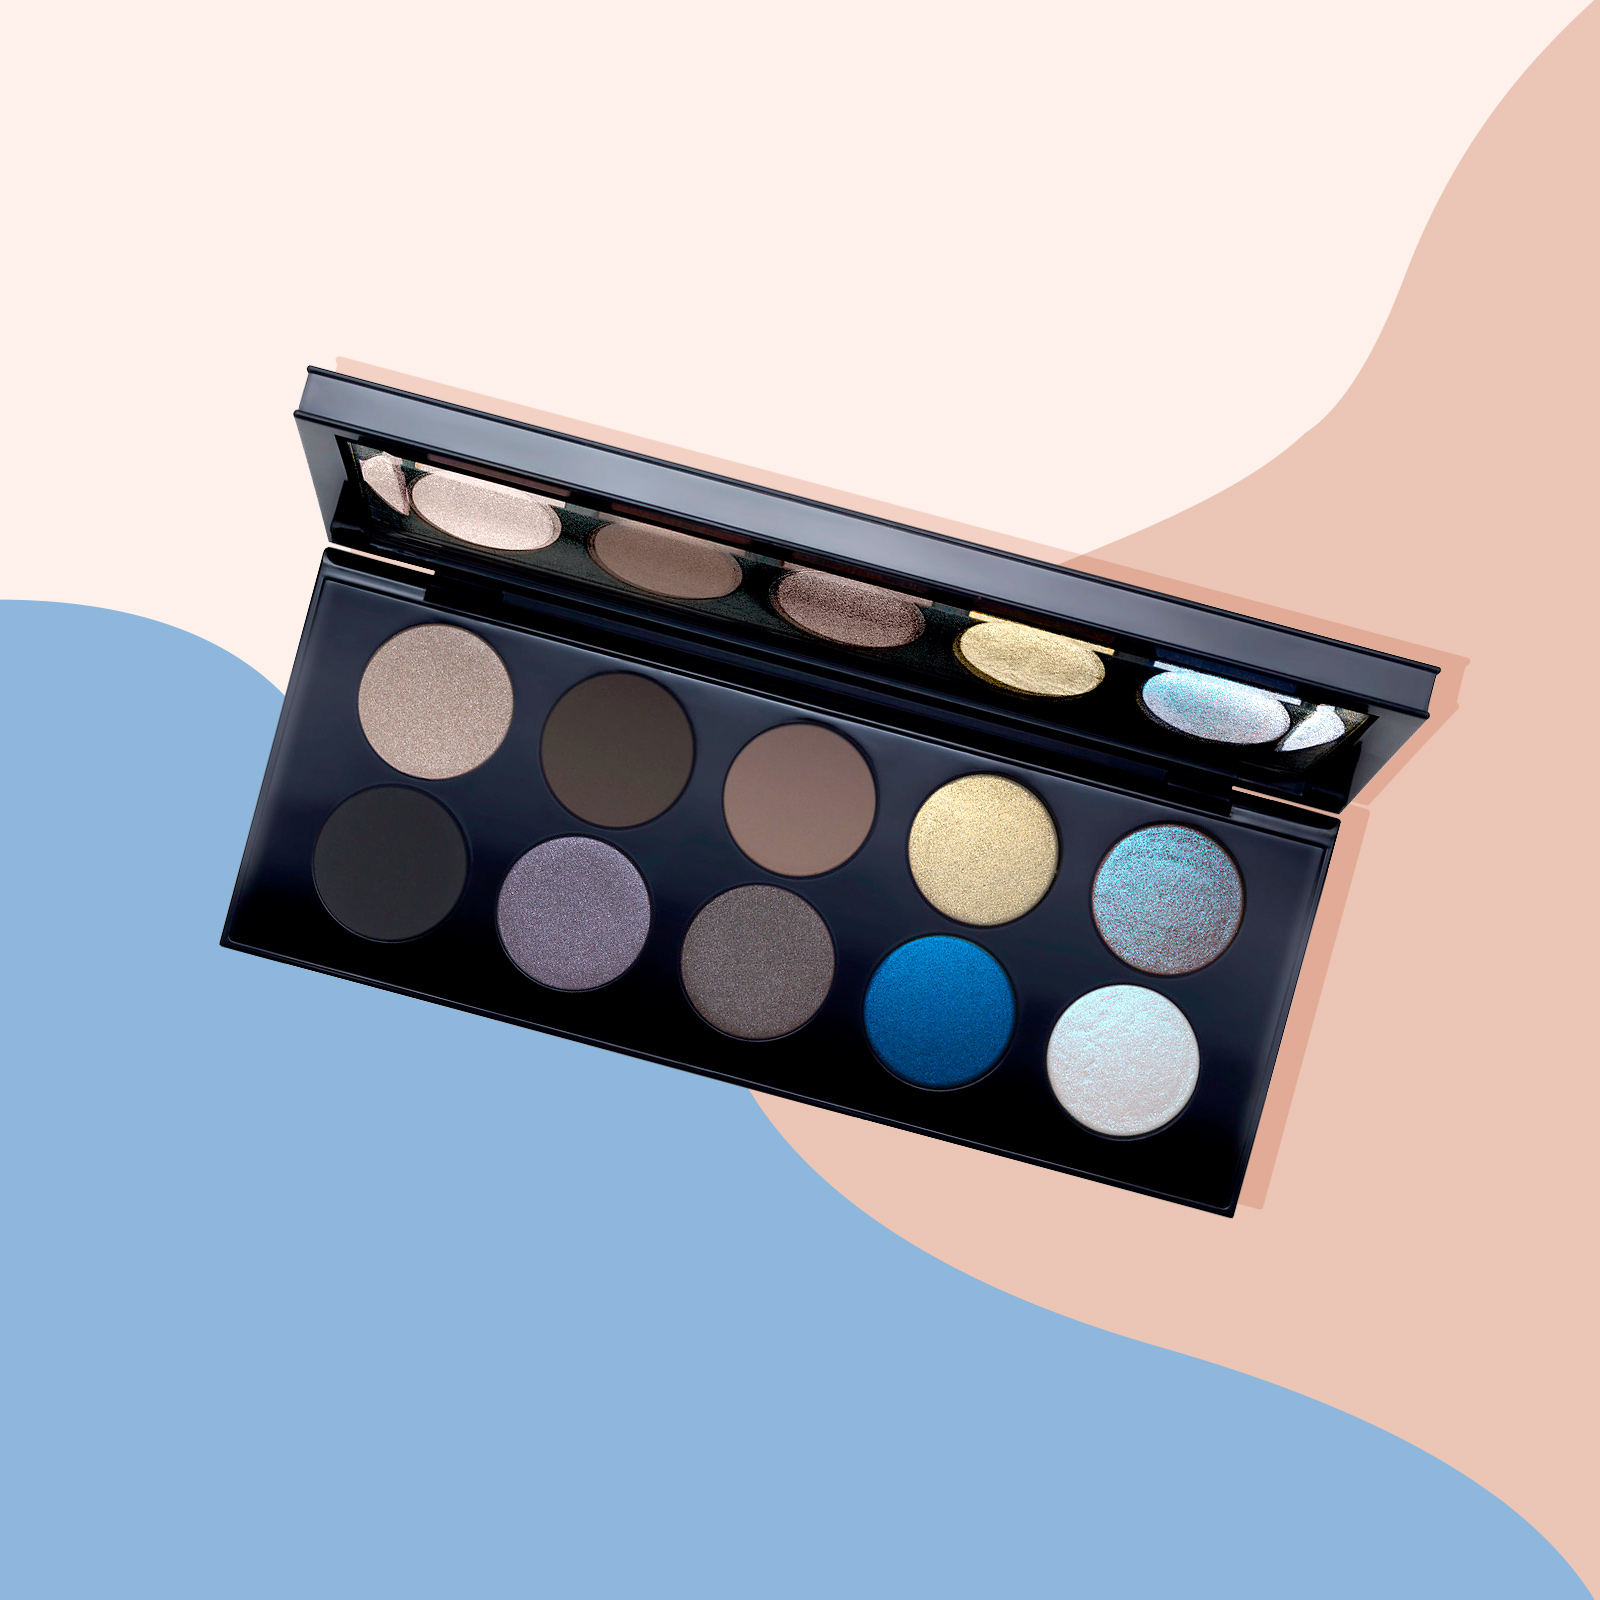 The Only 6 Eyeshadow Palettes InStyle Editors Use